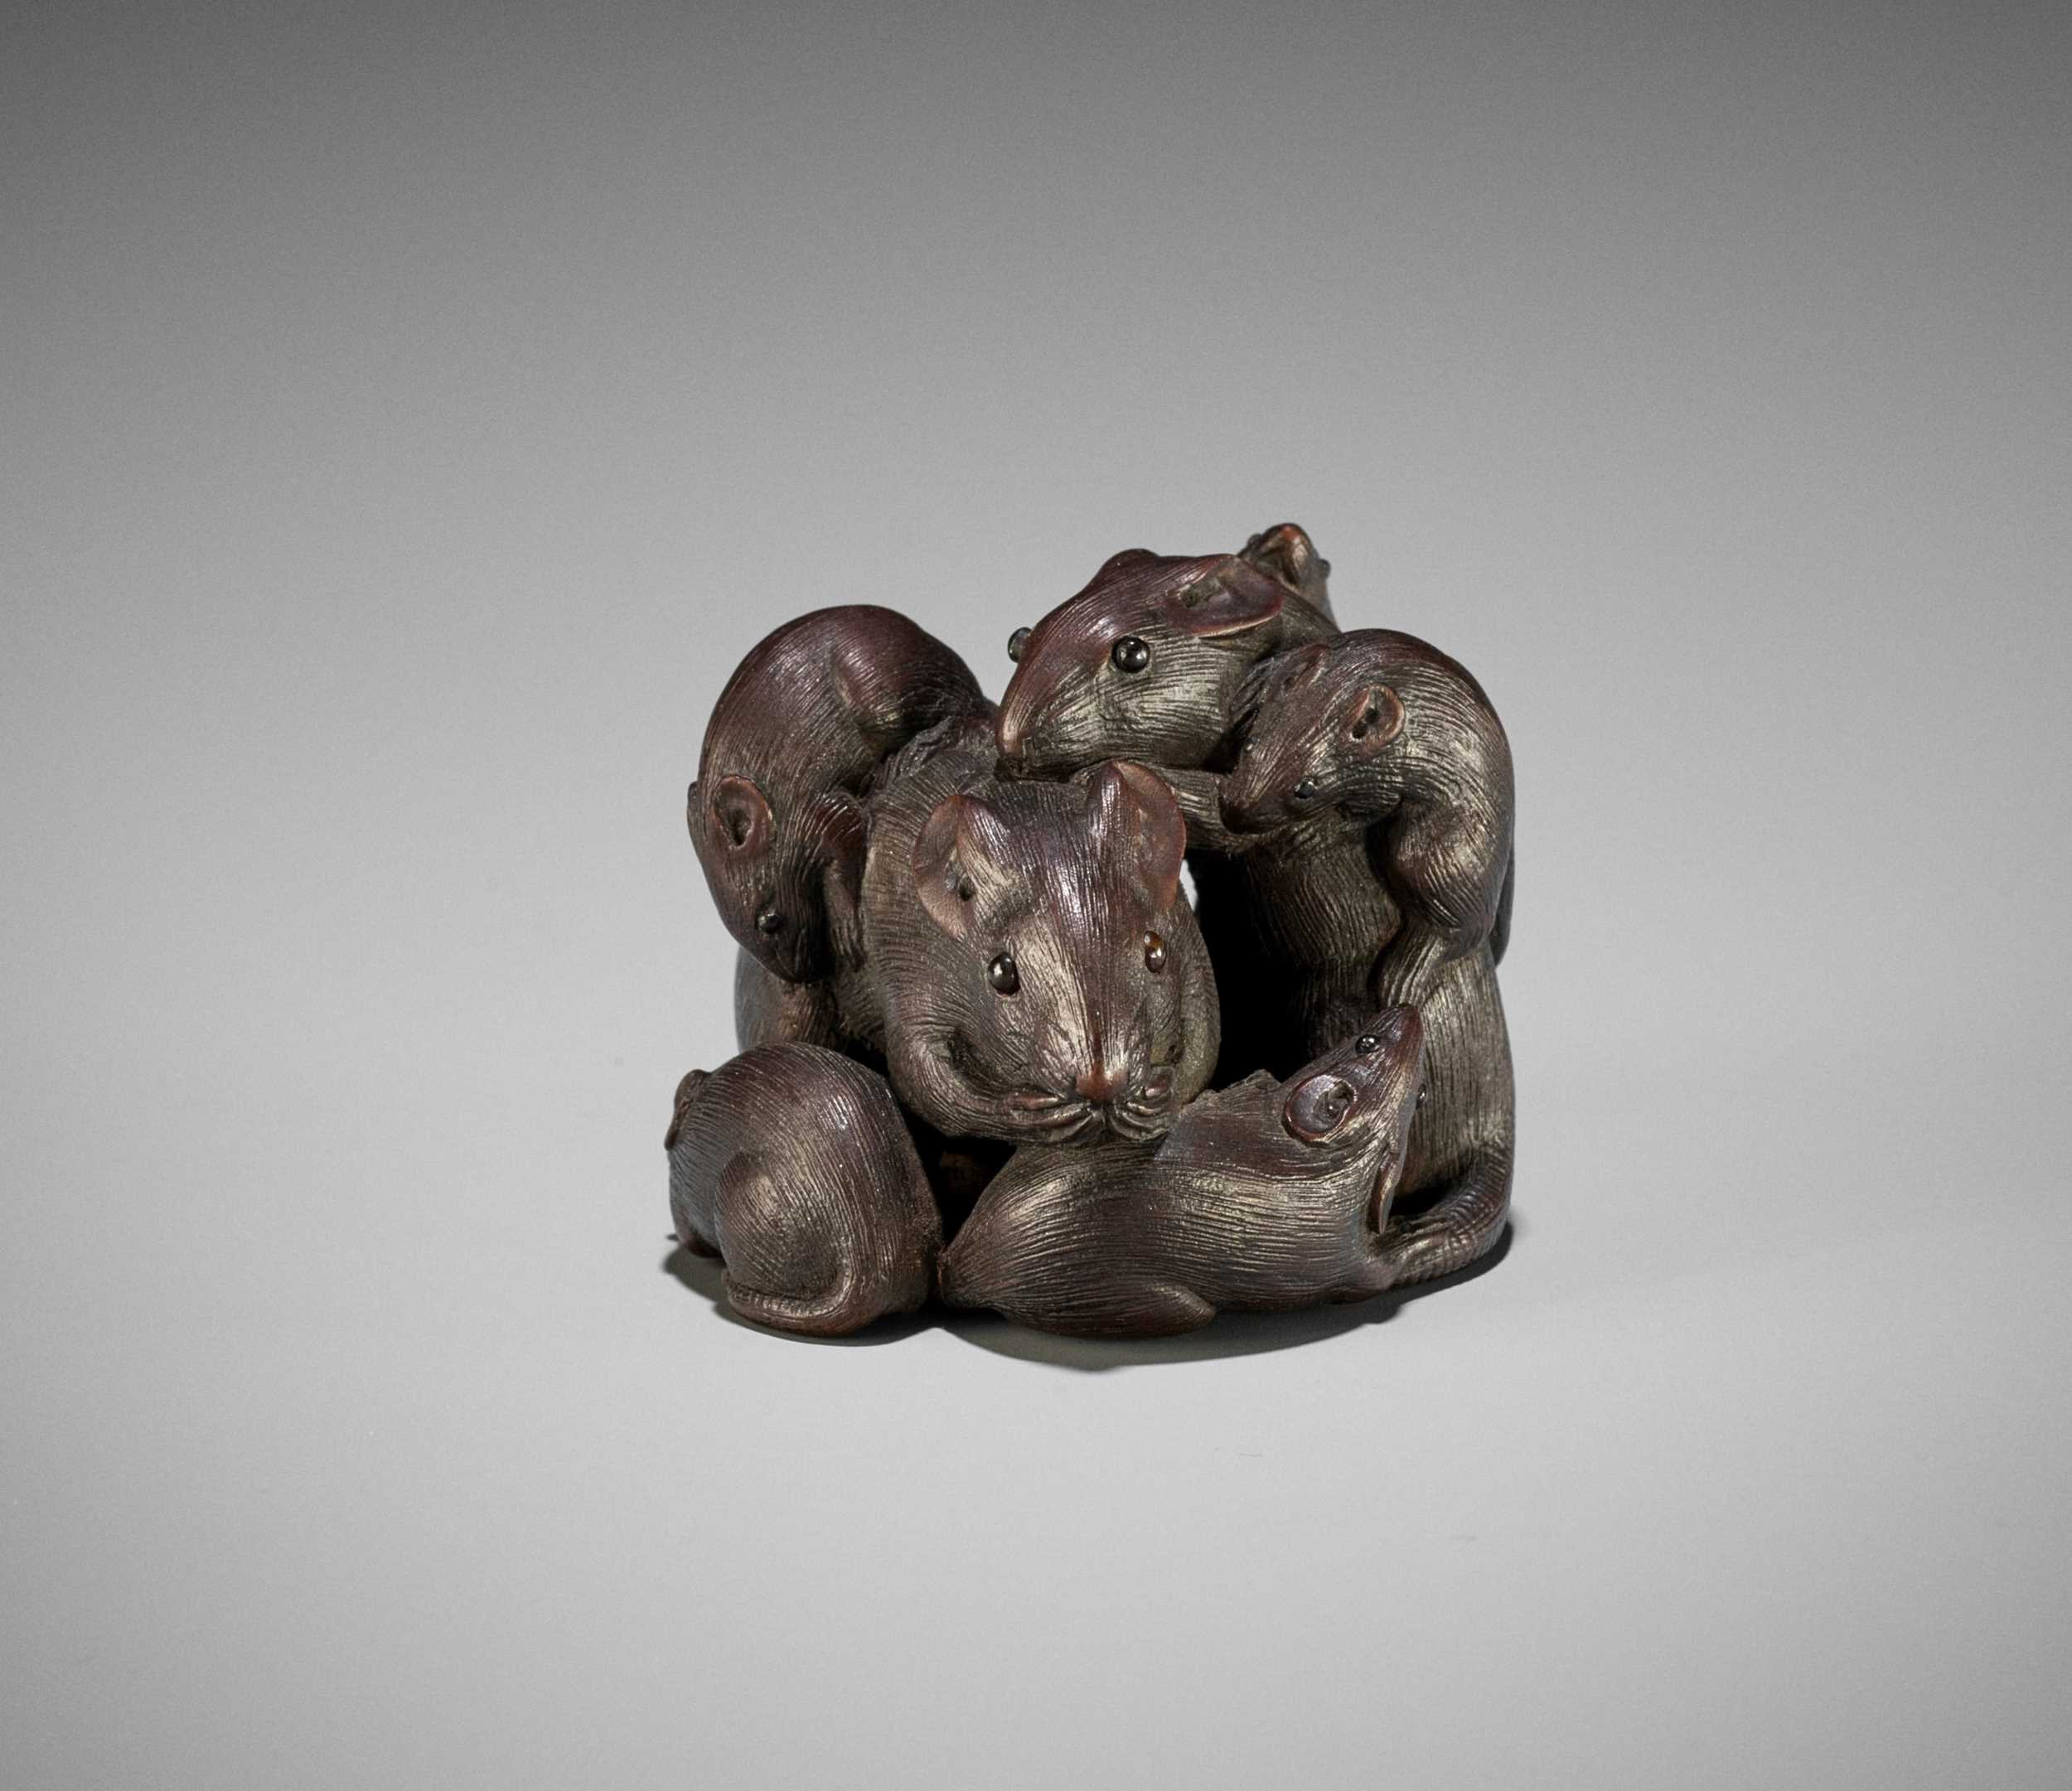 Lot 75 - A WOOD NETSUKE OF A CLUSTER OF RATS, ATTRIBUTED TO KAIGYOKUDO MASATERU